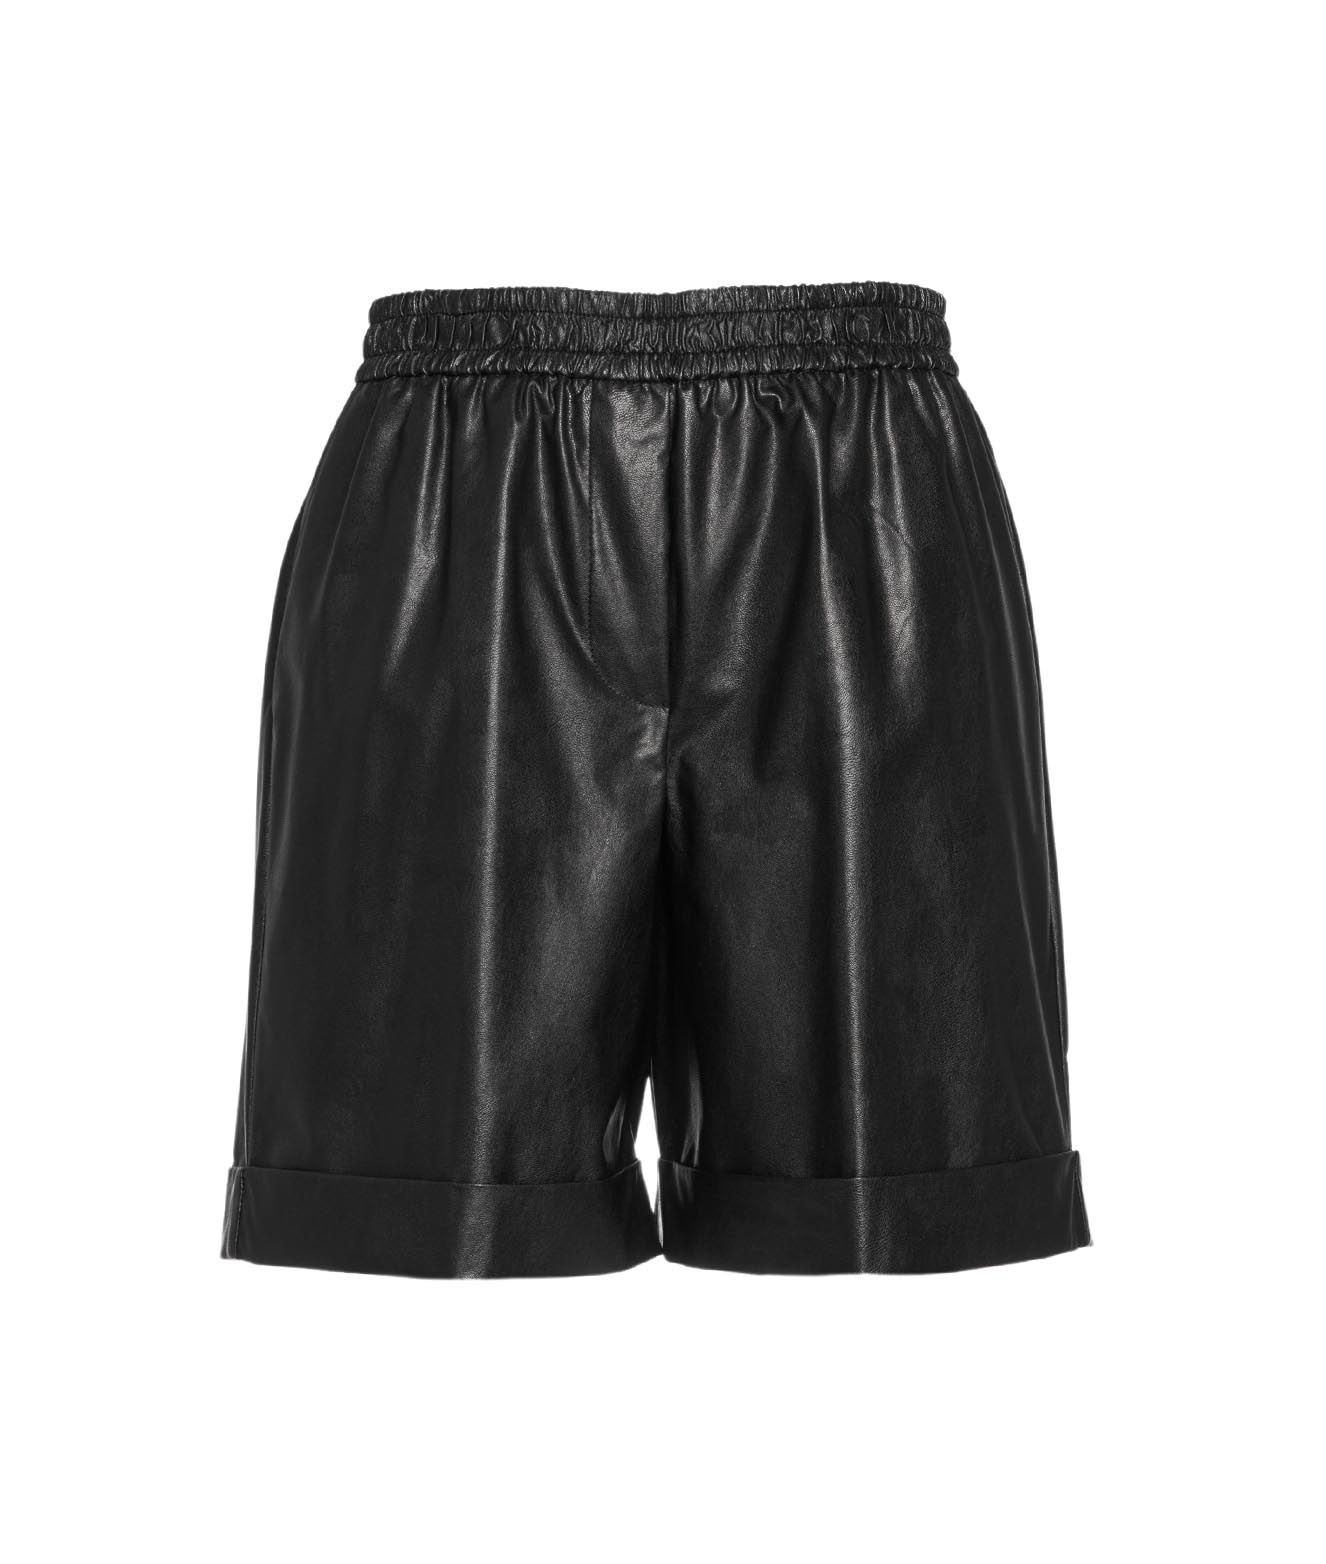 Nude SHORTS IN ECO LEATHER